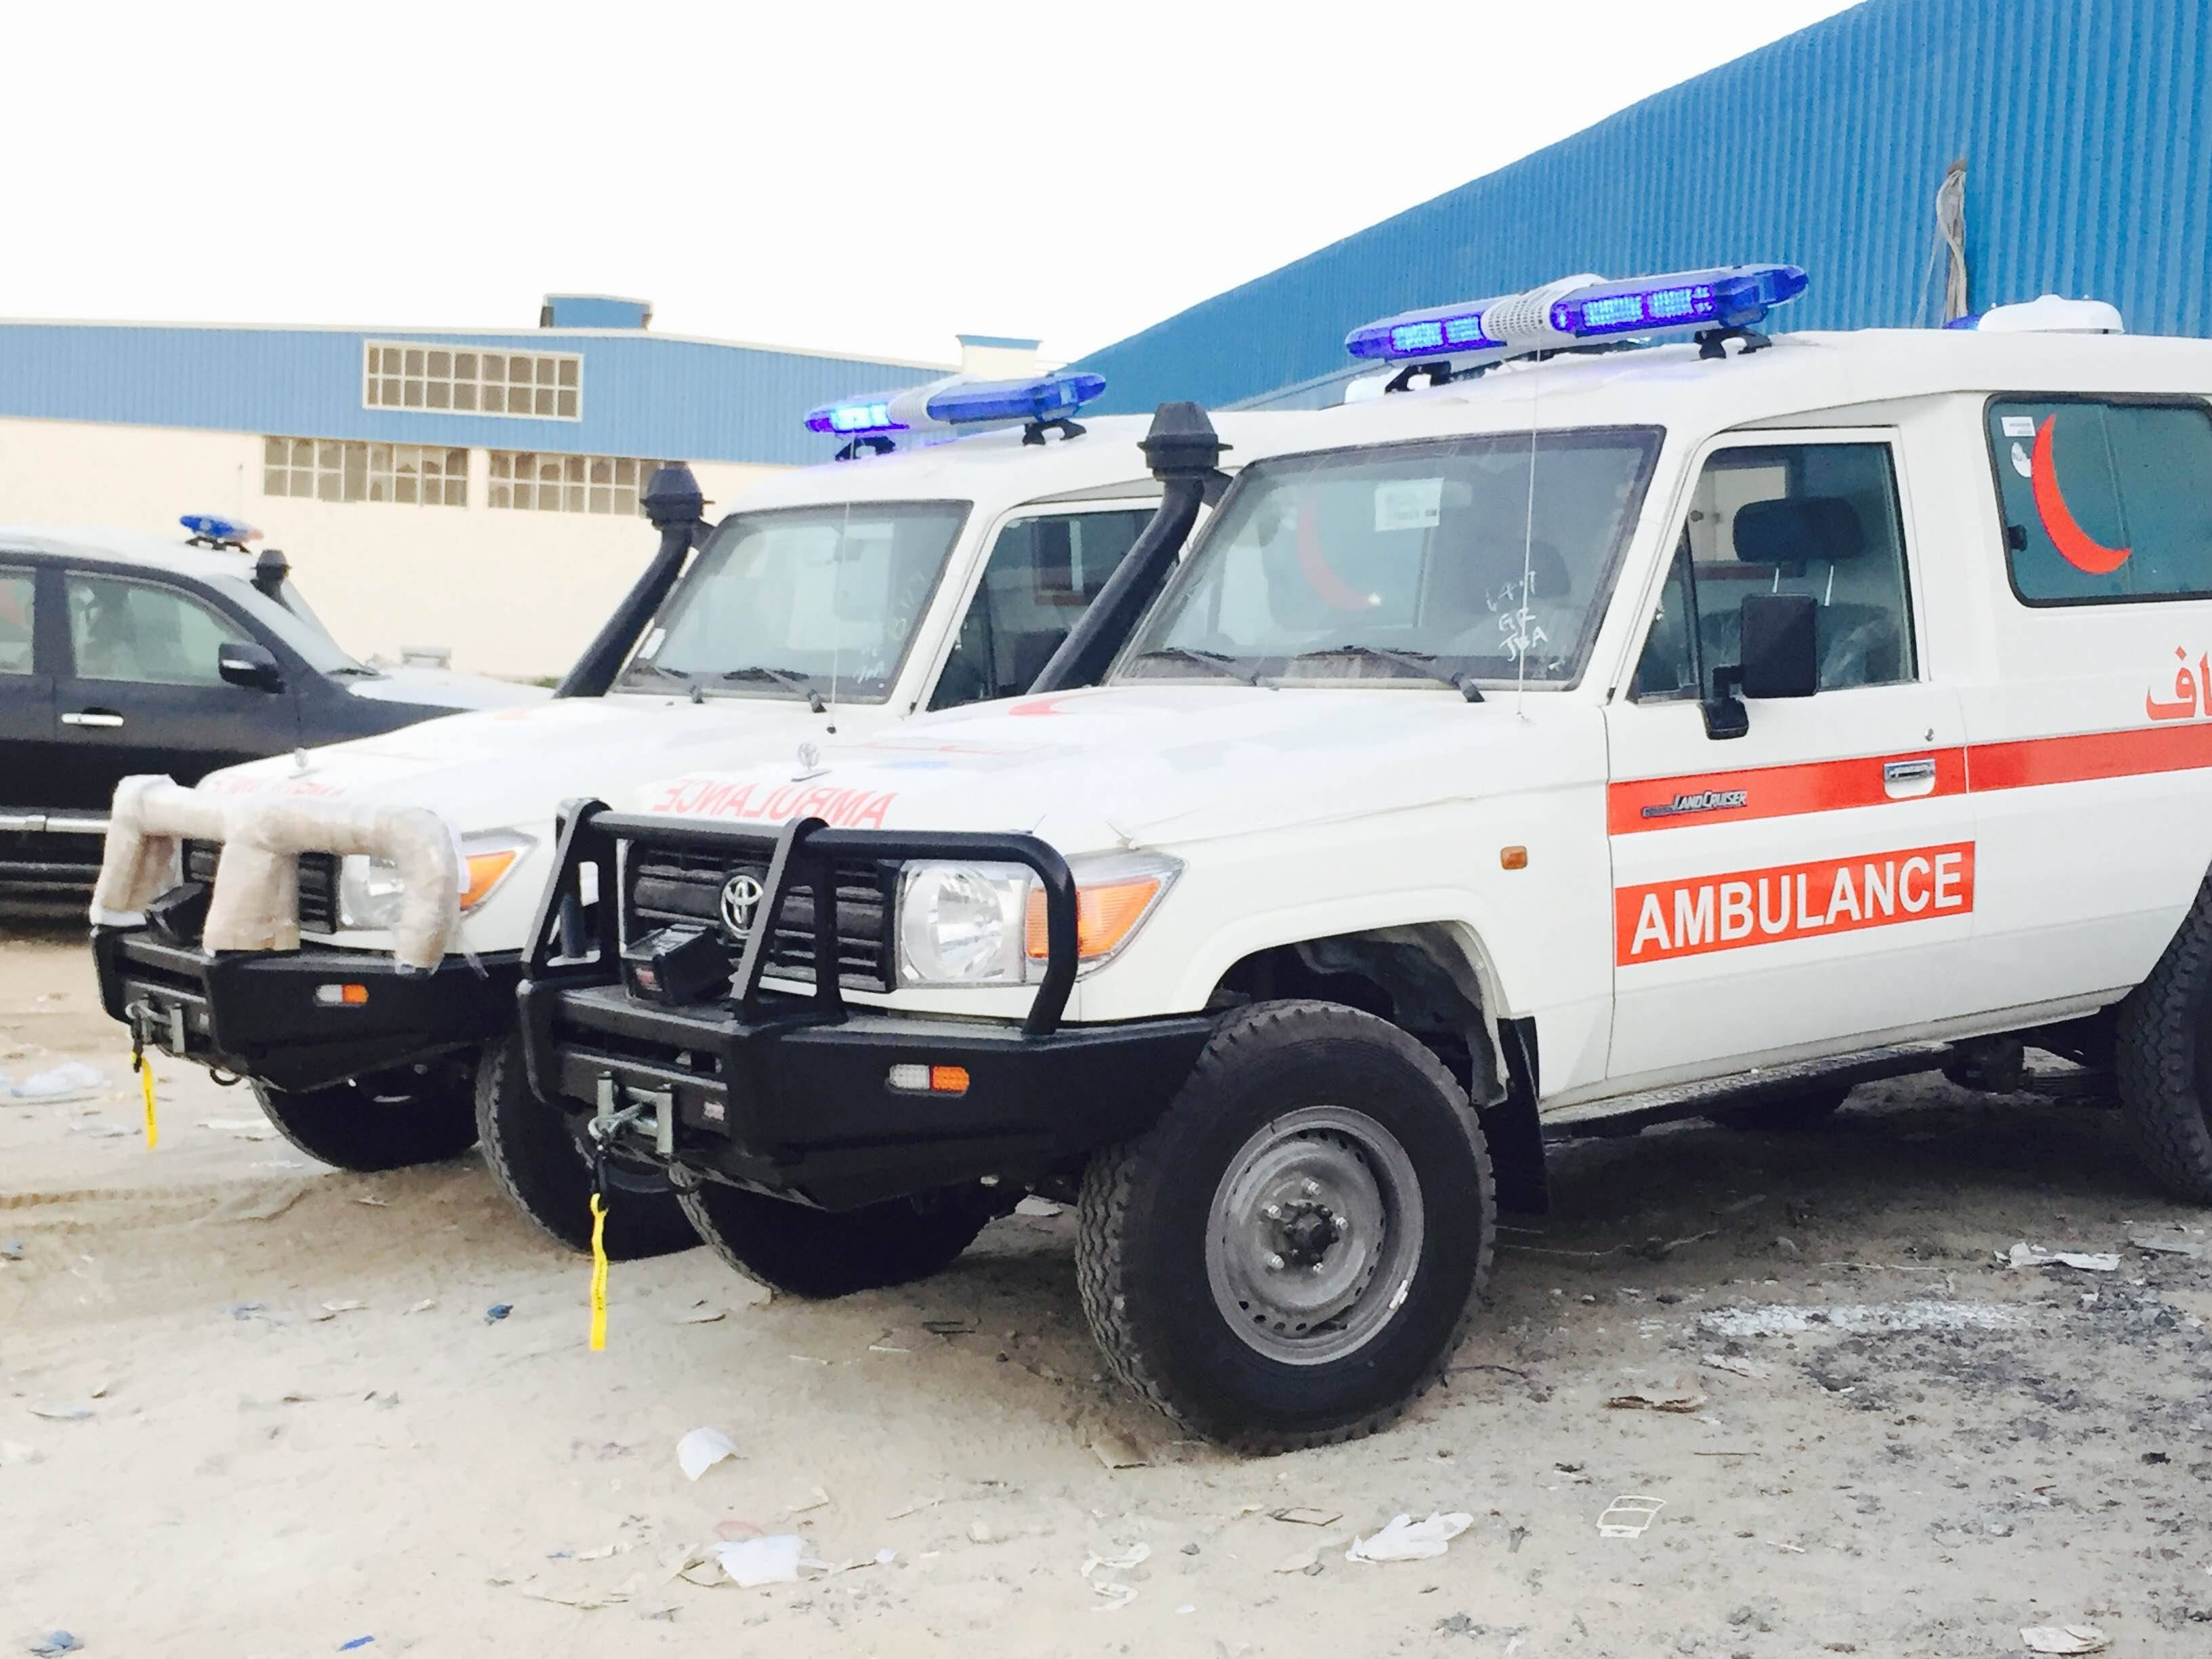 Ambulance 4x4 Toyota Land Cruiser